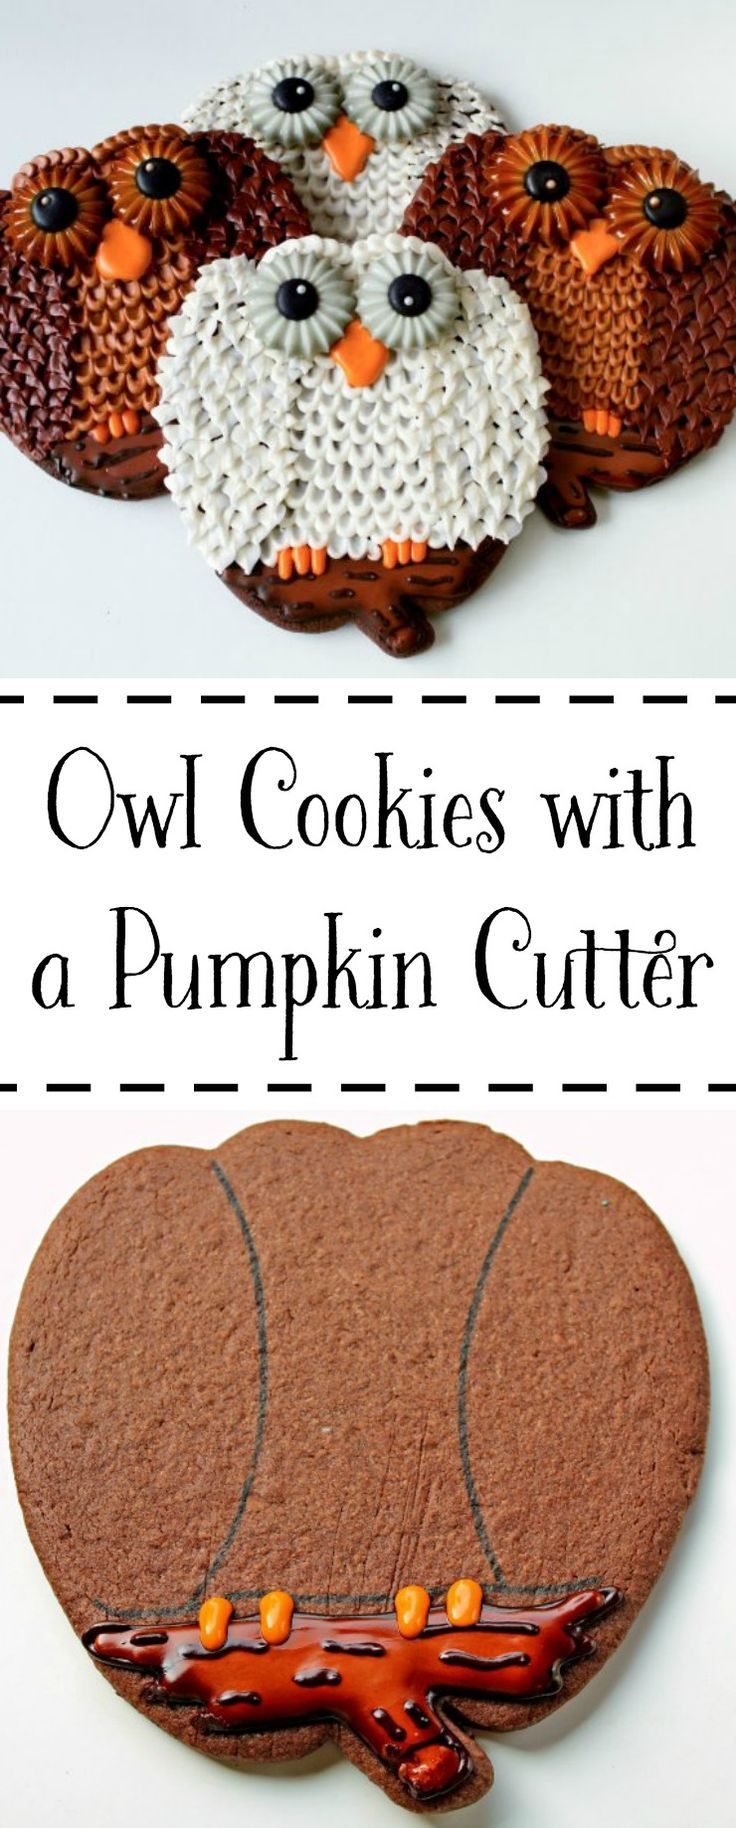 Make this Cute Owl Cookie by Using the Pumpkin Cookie Cutter | The Bearfoot Baker